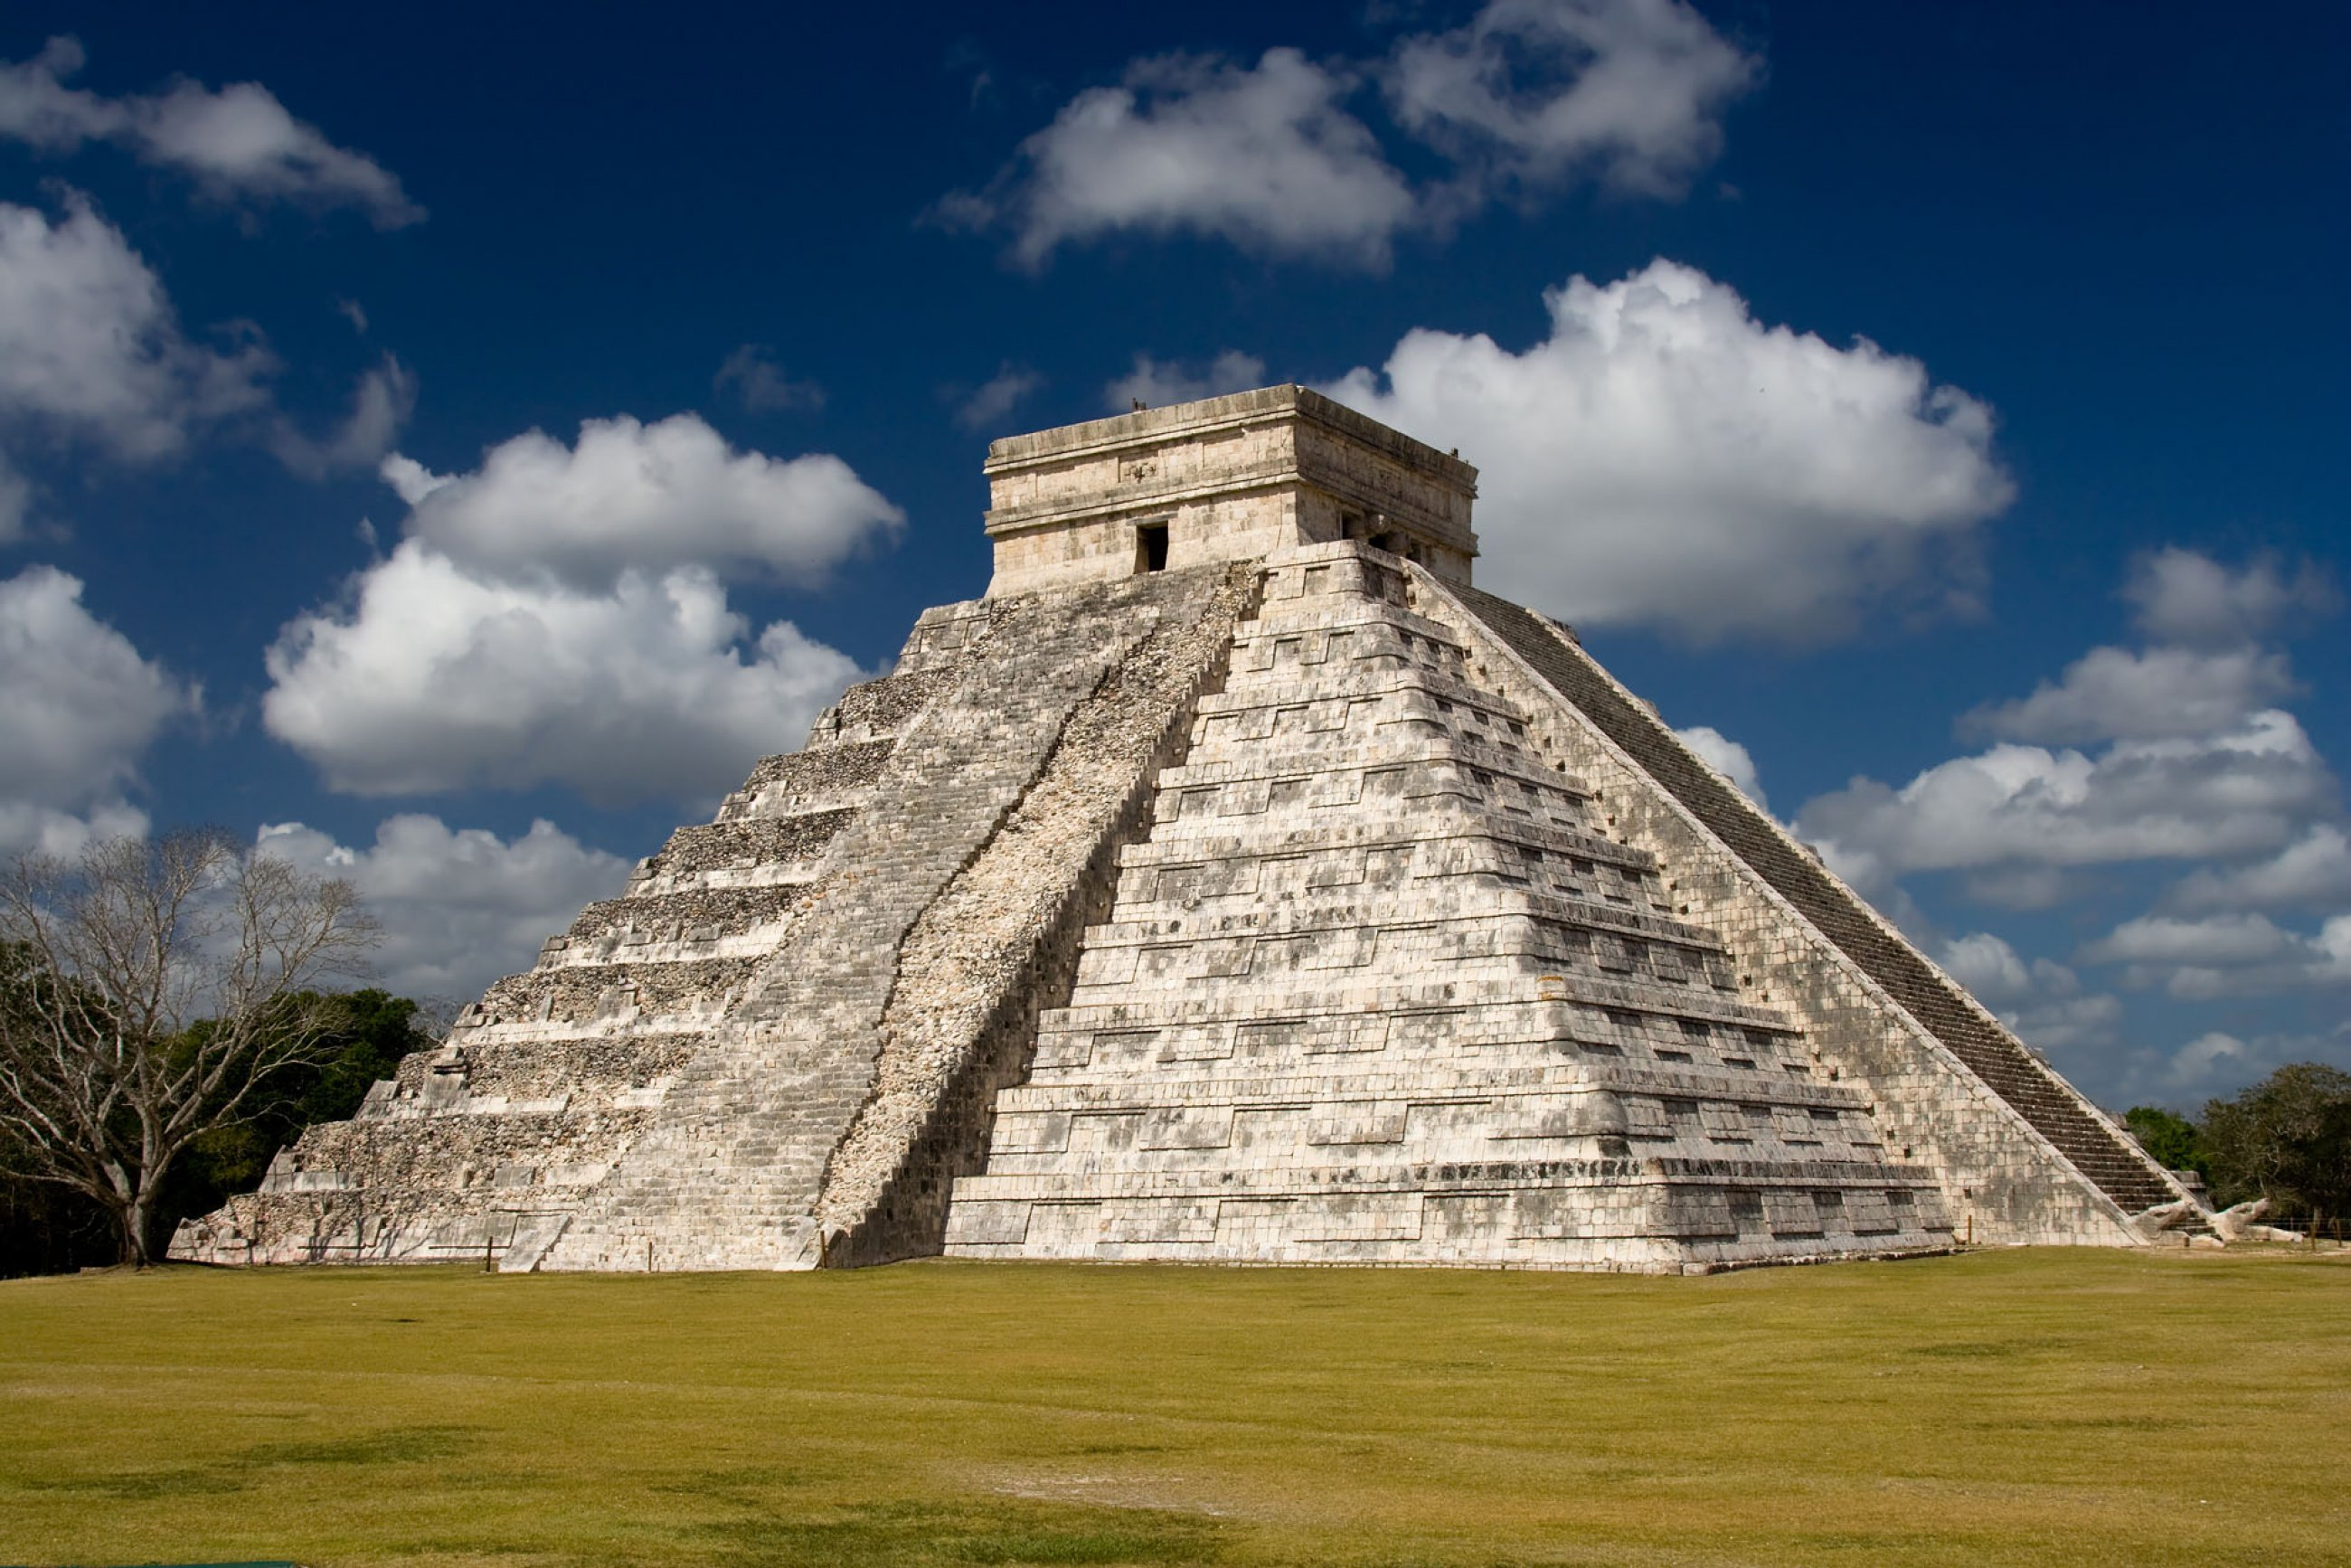 https://bubo.sk/uploads/galleries/7336/chichen-itza-dreamstime-xl-23603210.jpg